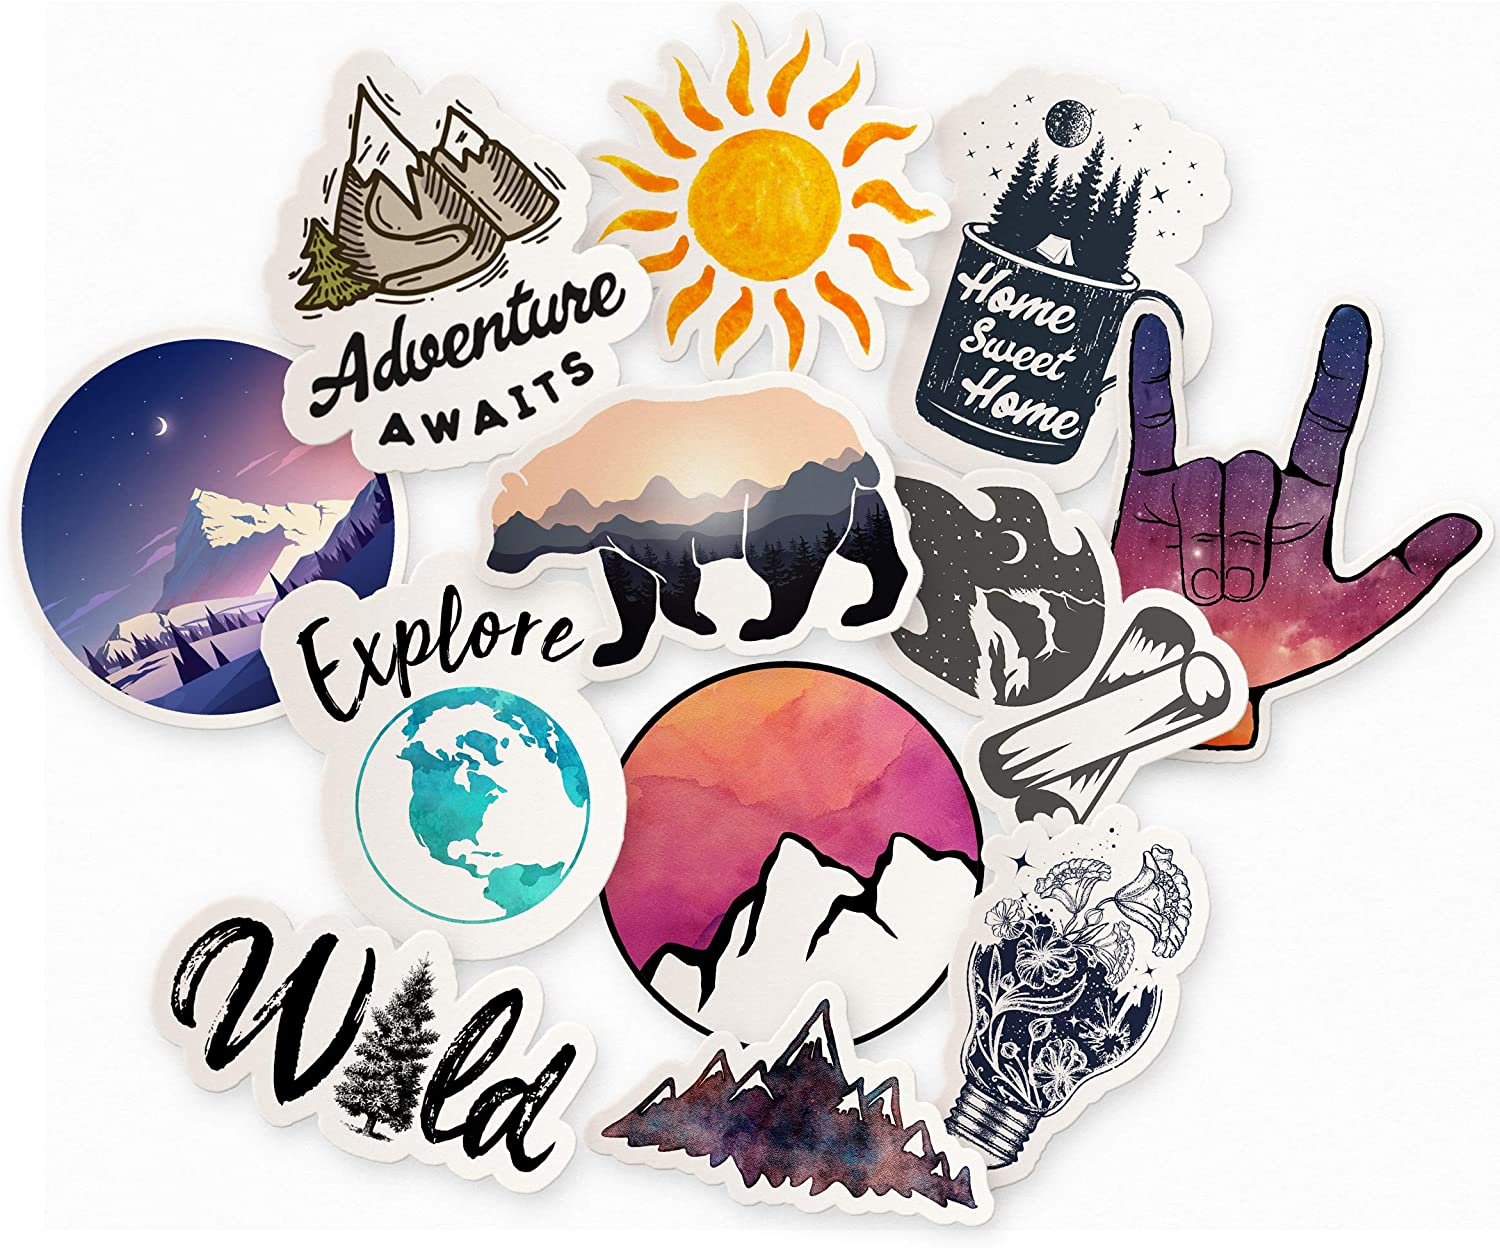 Adventure Sticker Pack for Water Bottles, 12 Pack Waterproof Stickers for Water Bottle, Mountain Decals, Trendy Outdoor Packs, Nature Stickers for Laptop, Outdoor Stickers, Outdoor Sticker Pack